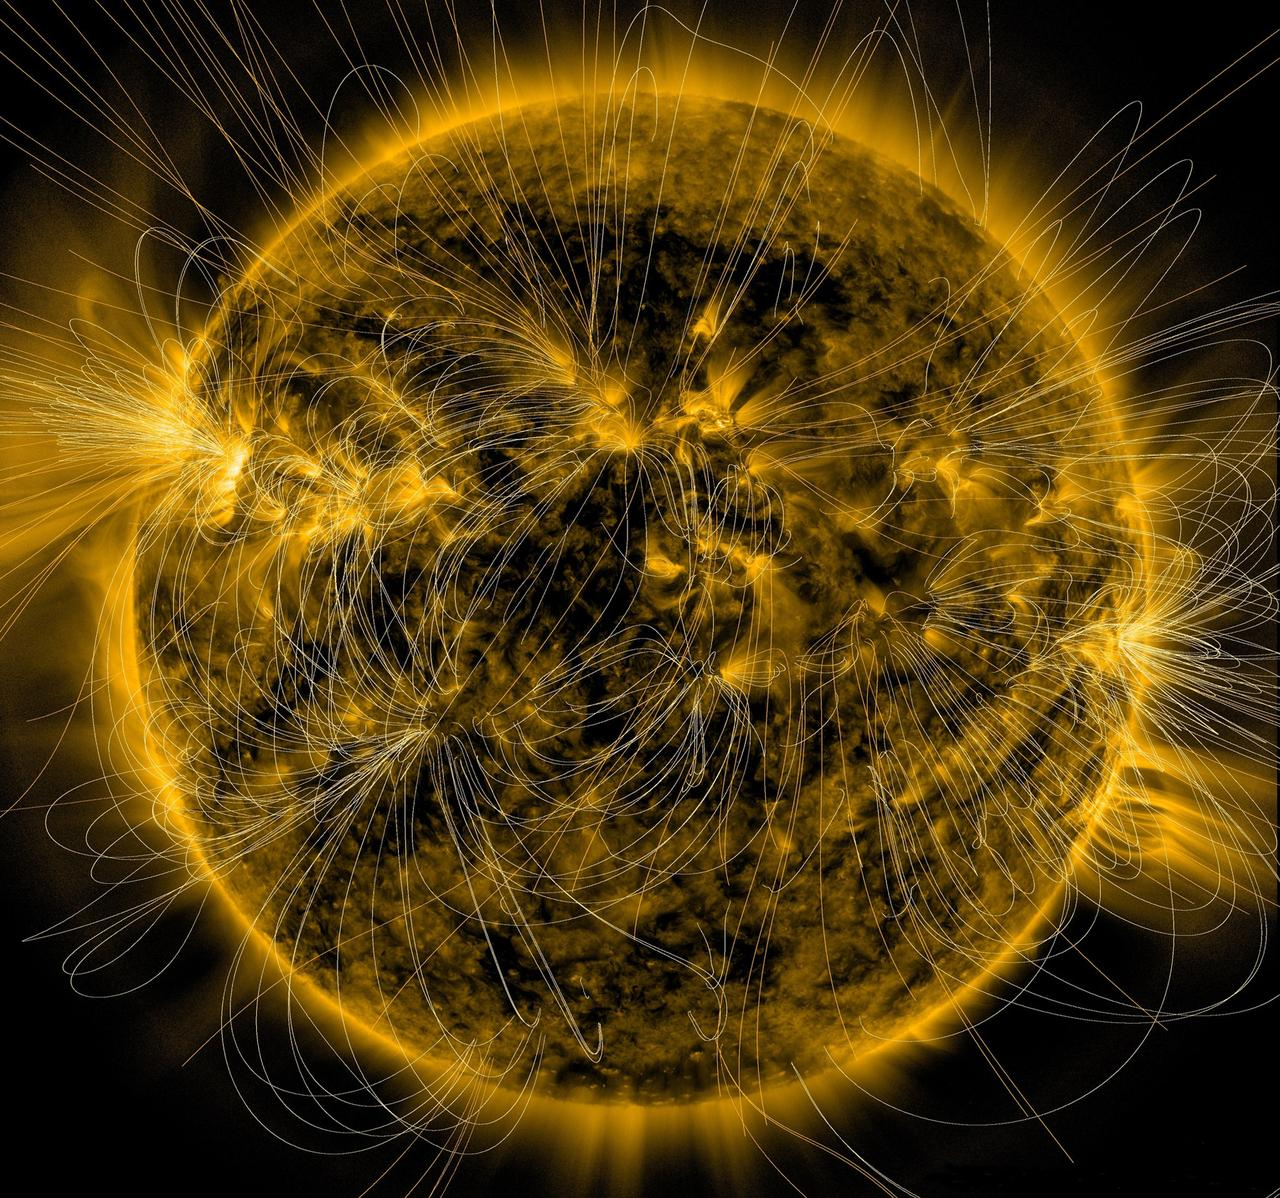 Nasa_SunMagnetic.jpg